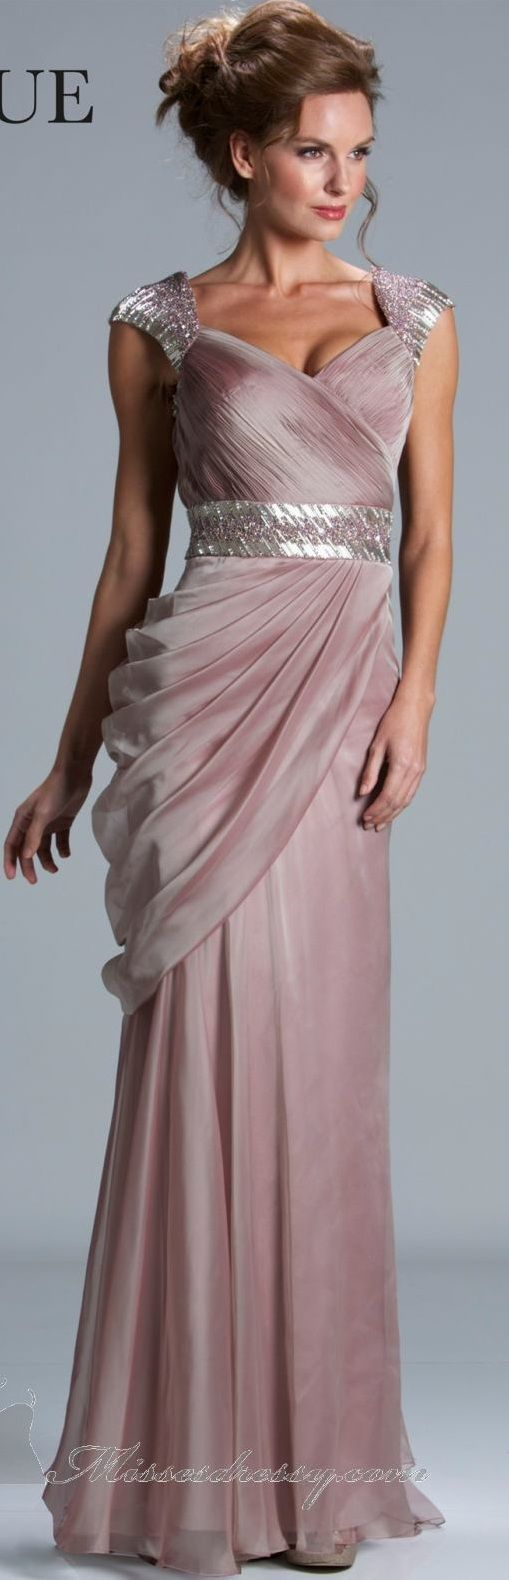 Janique couture ~ If this was white this would make a real pretty wed. dress.